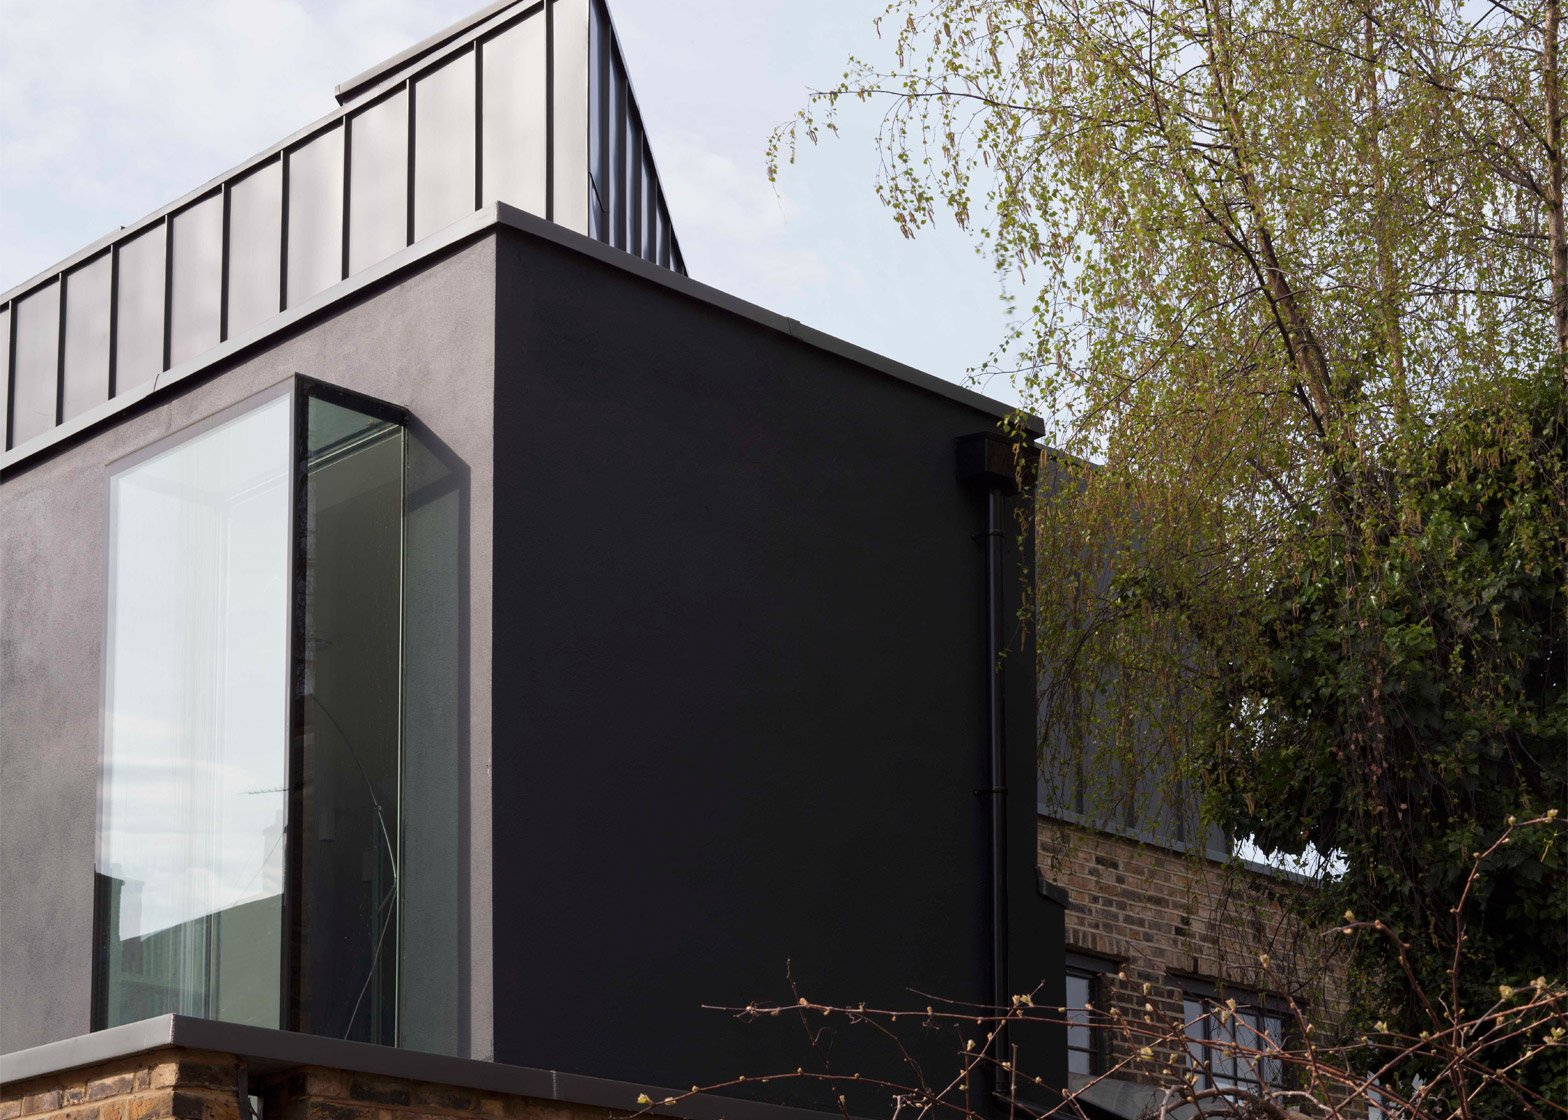 Giles Pike adds steel extension to house in converted Victorian workshop